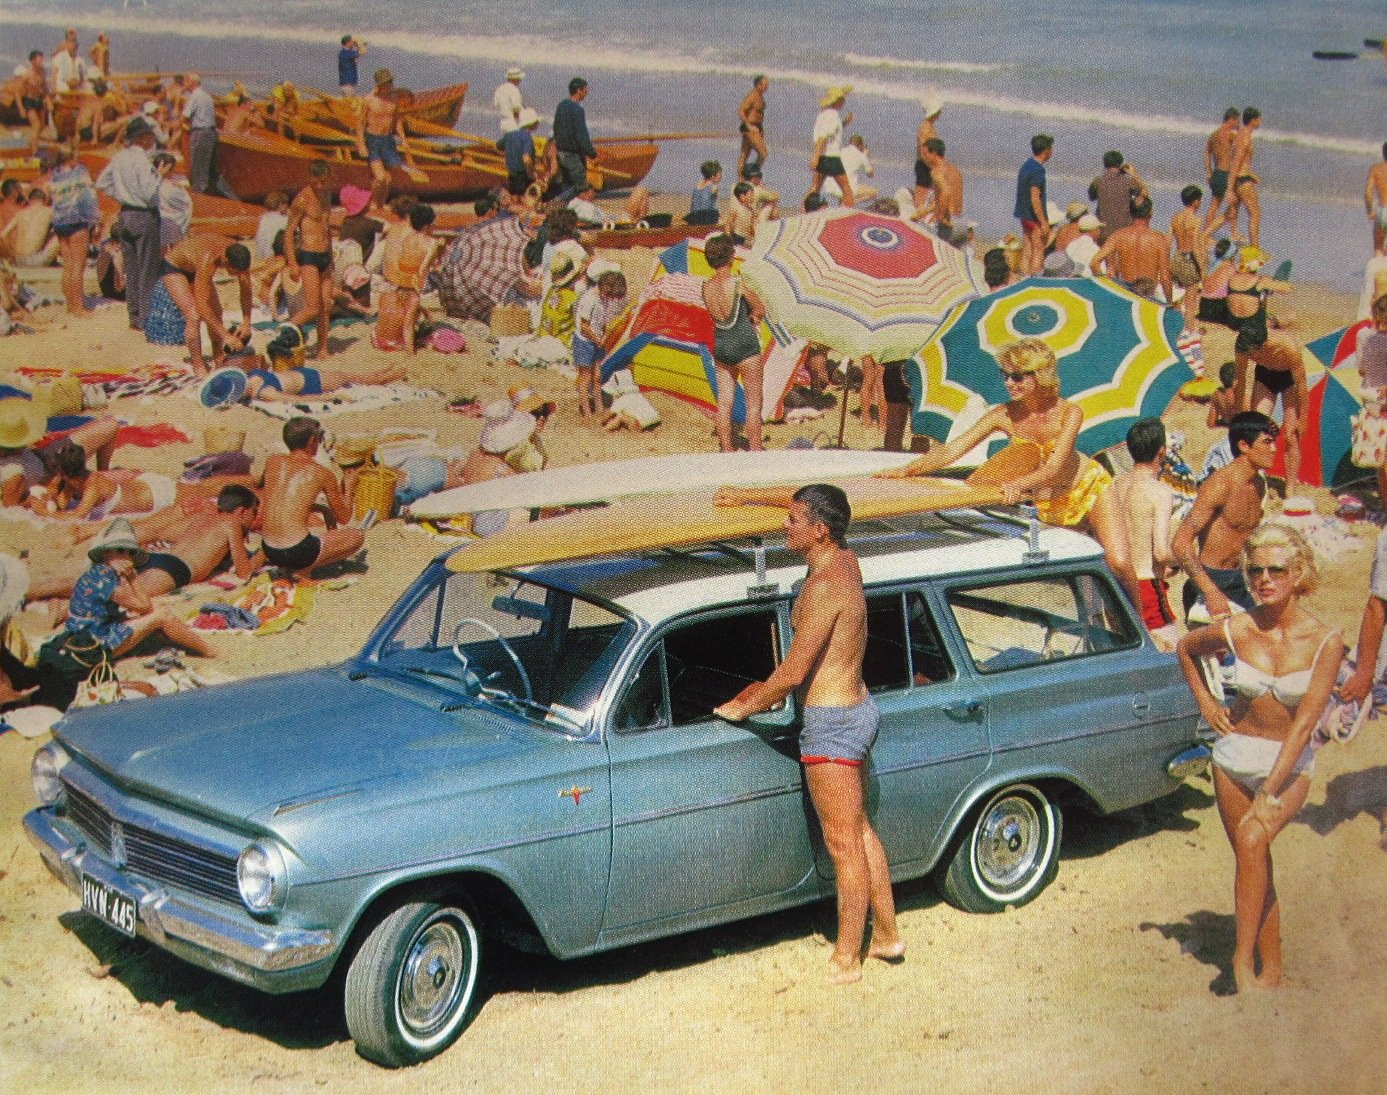 Eh Holden 1964 Surf City Sydney